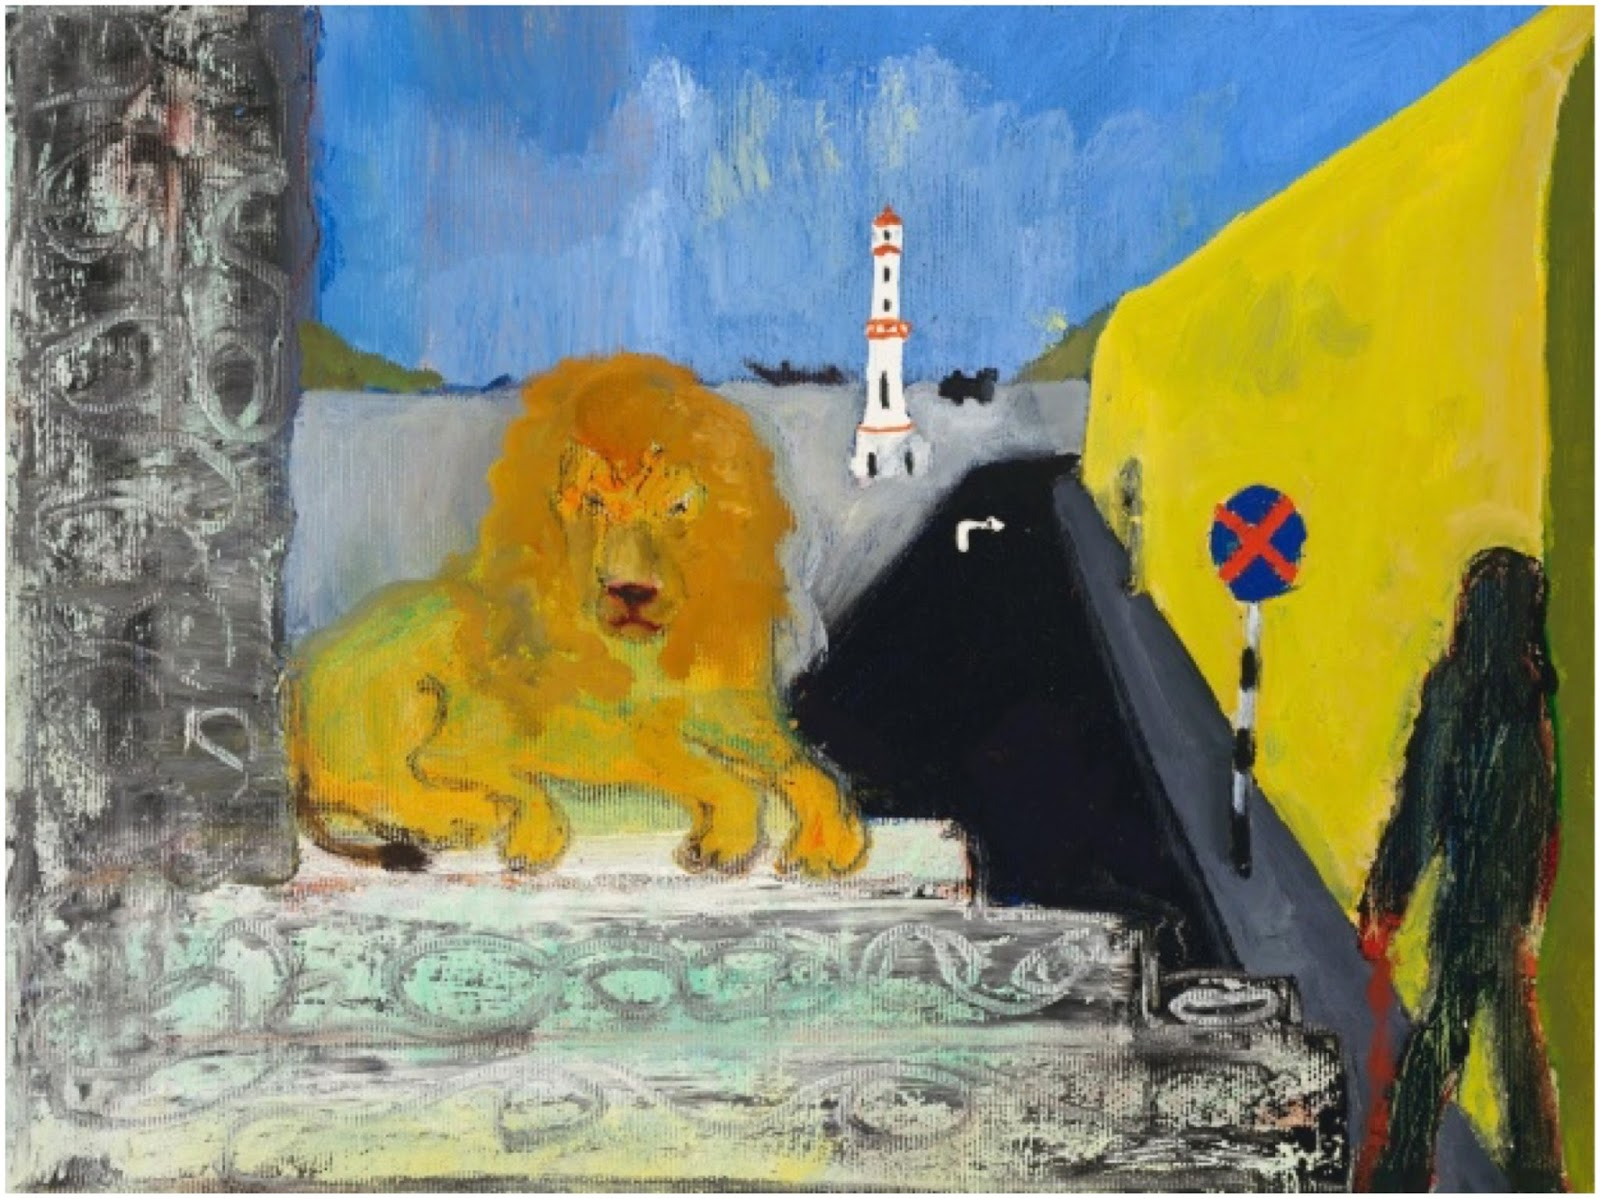 Chopped Hand, Peter Doig